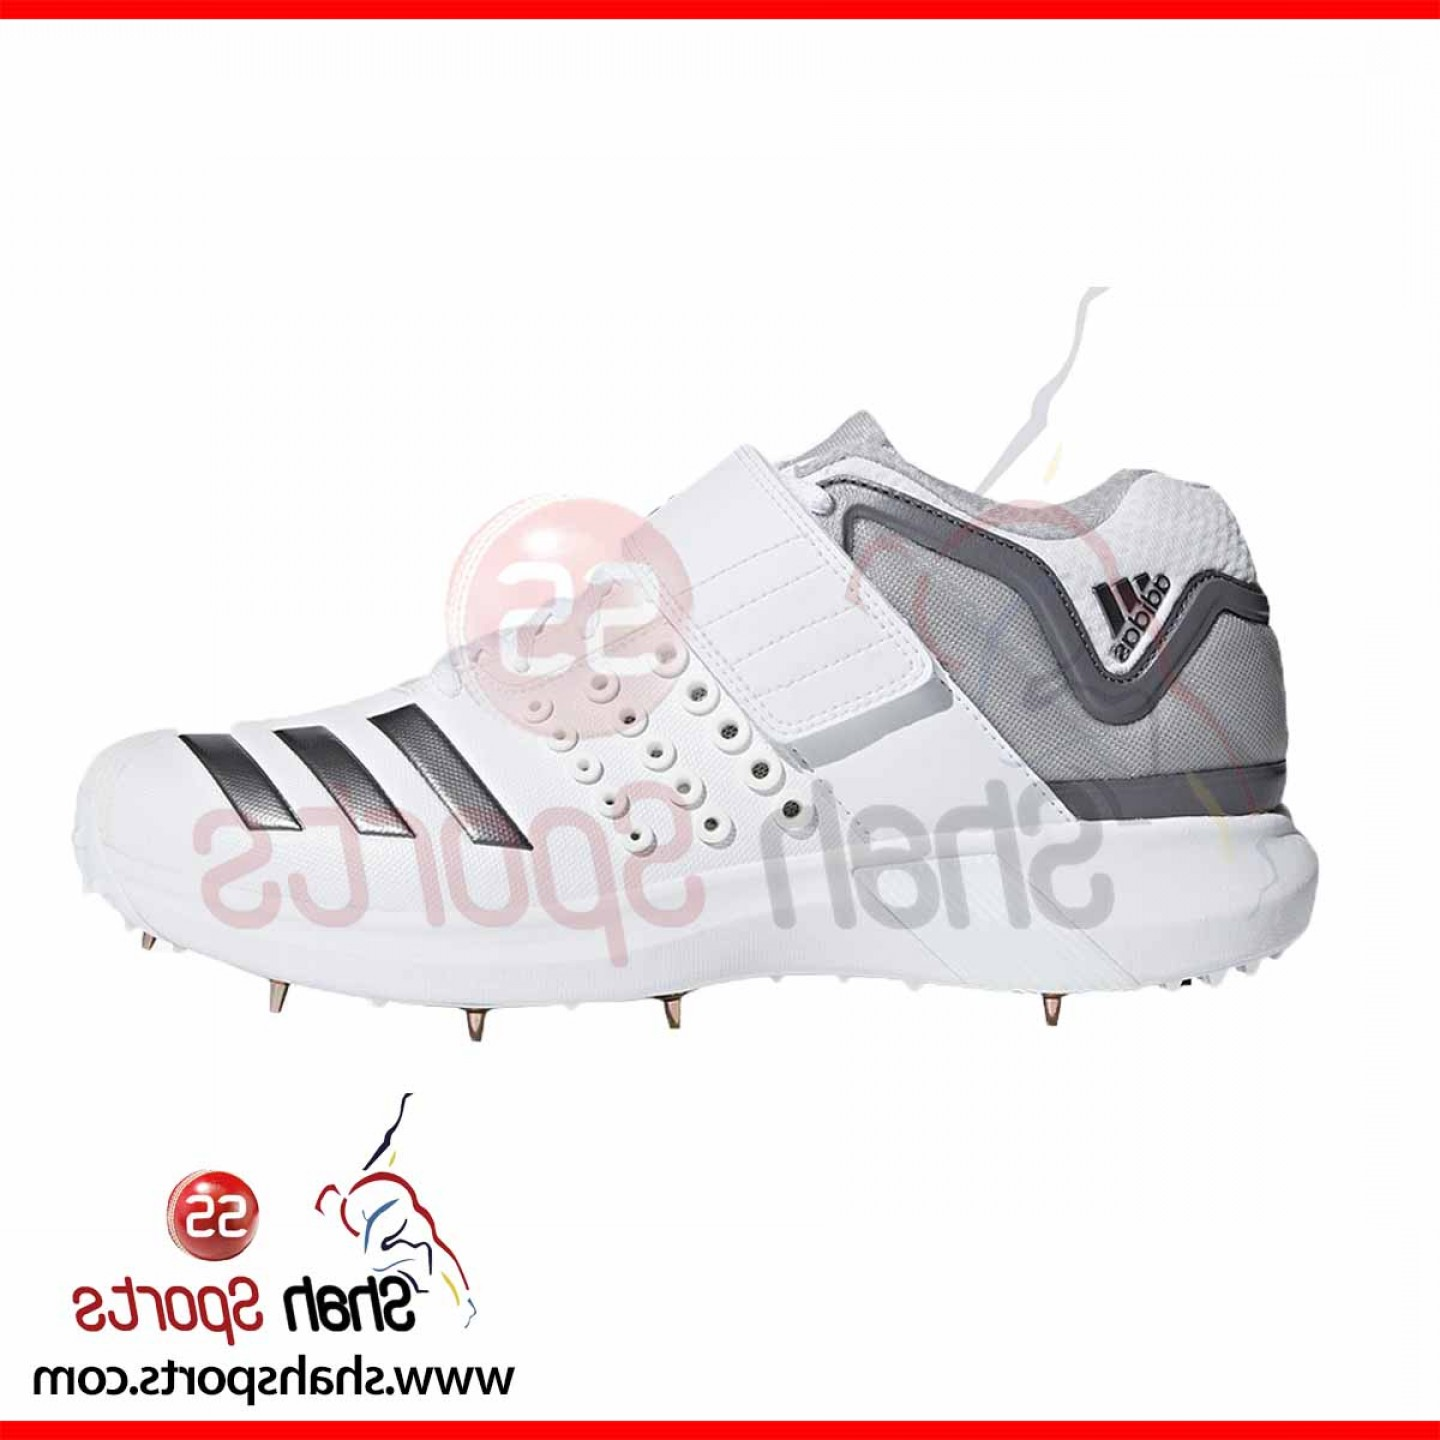 Adidas Brand Vector: Adidas Adipower Vector Mid Cricket Shoes